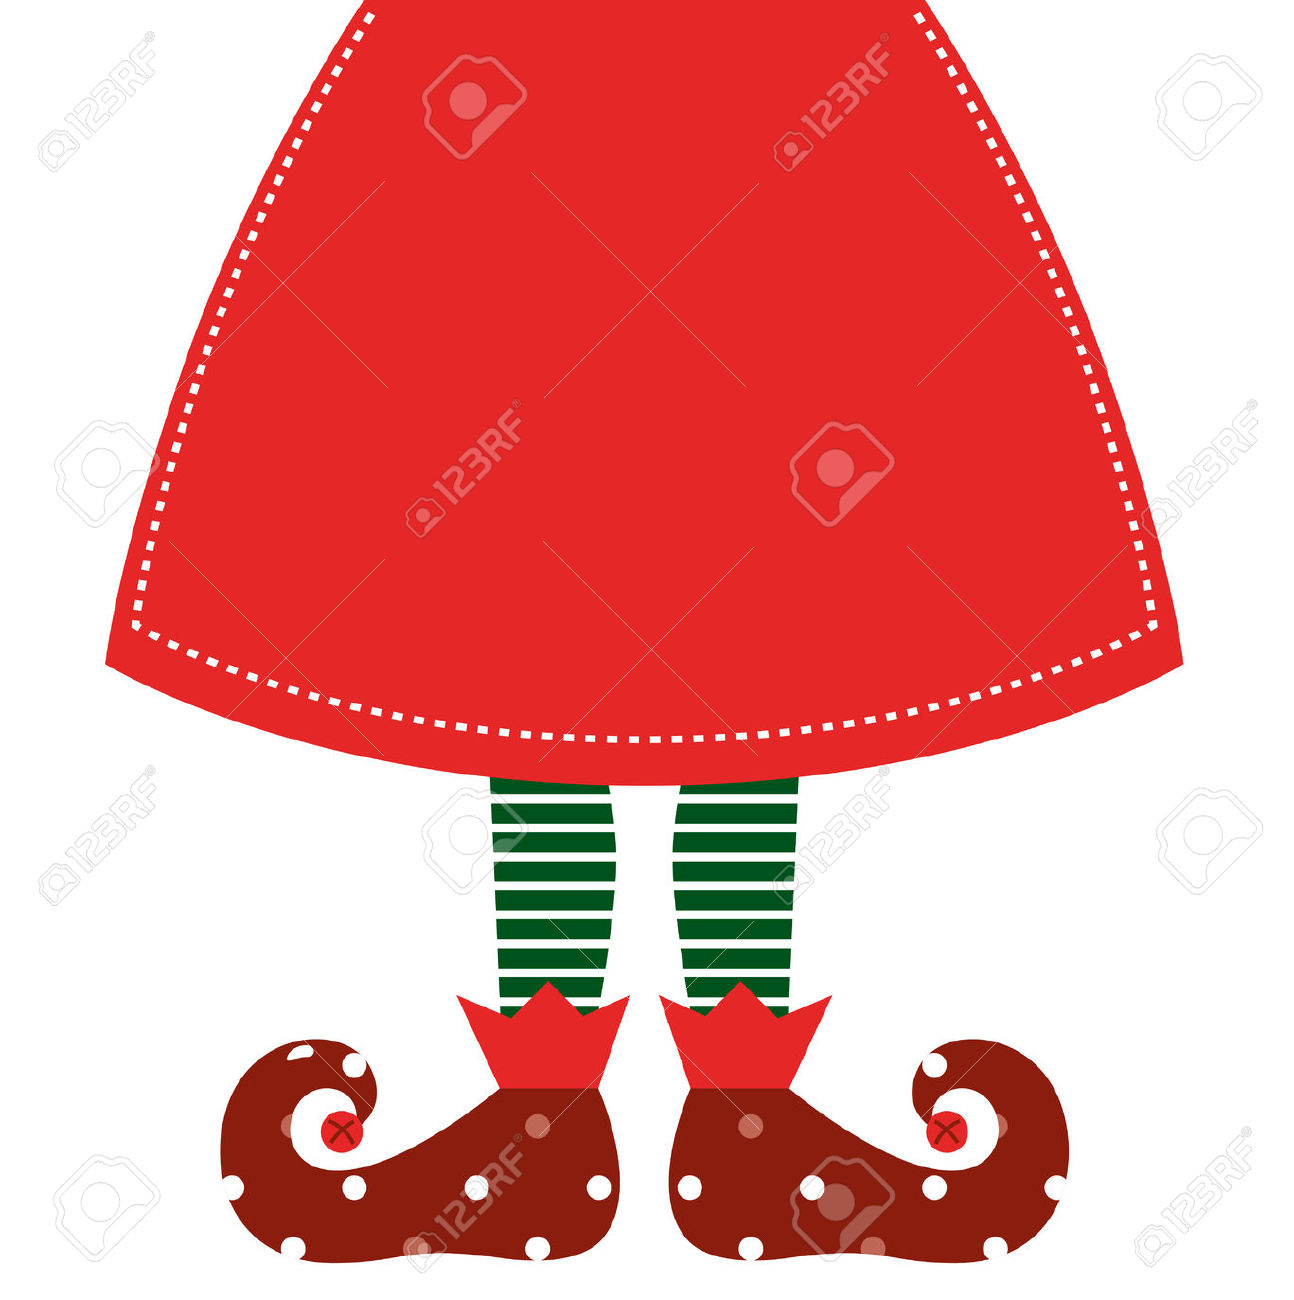 Christmas Elf Legs With Red Skirt Vector Illustration Royalty Free.